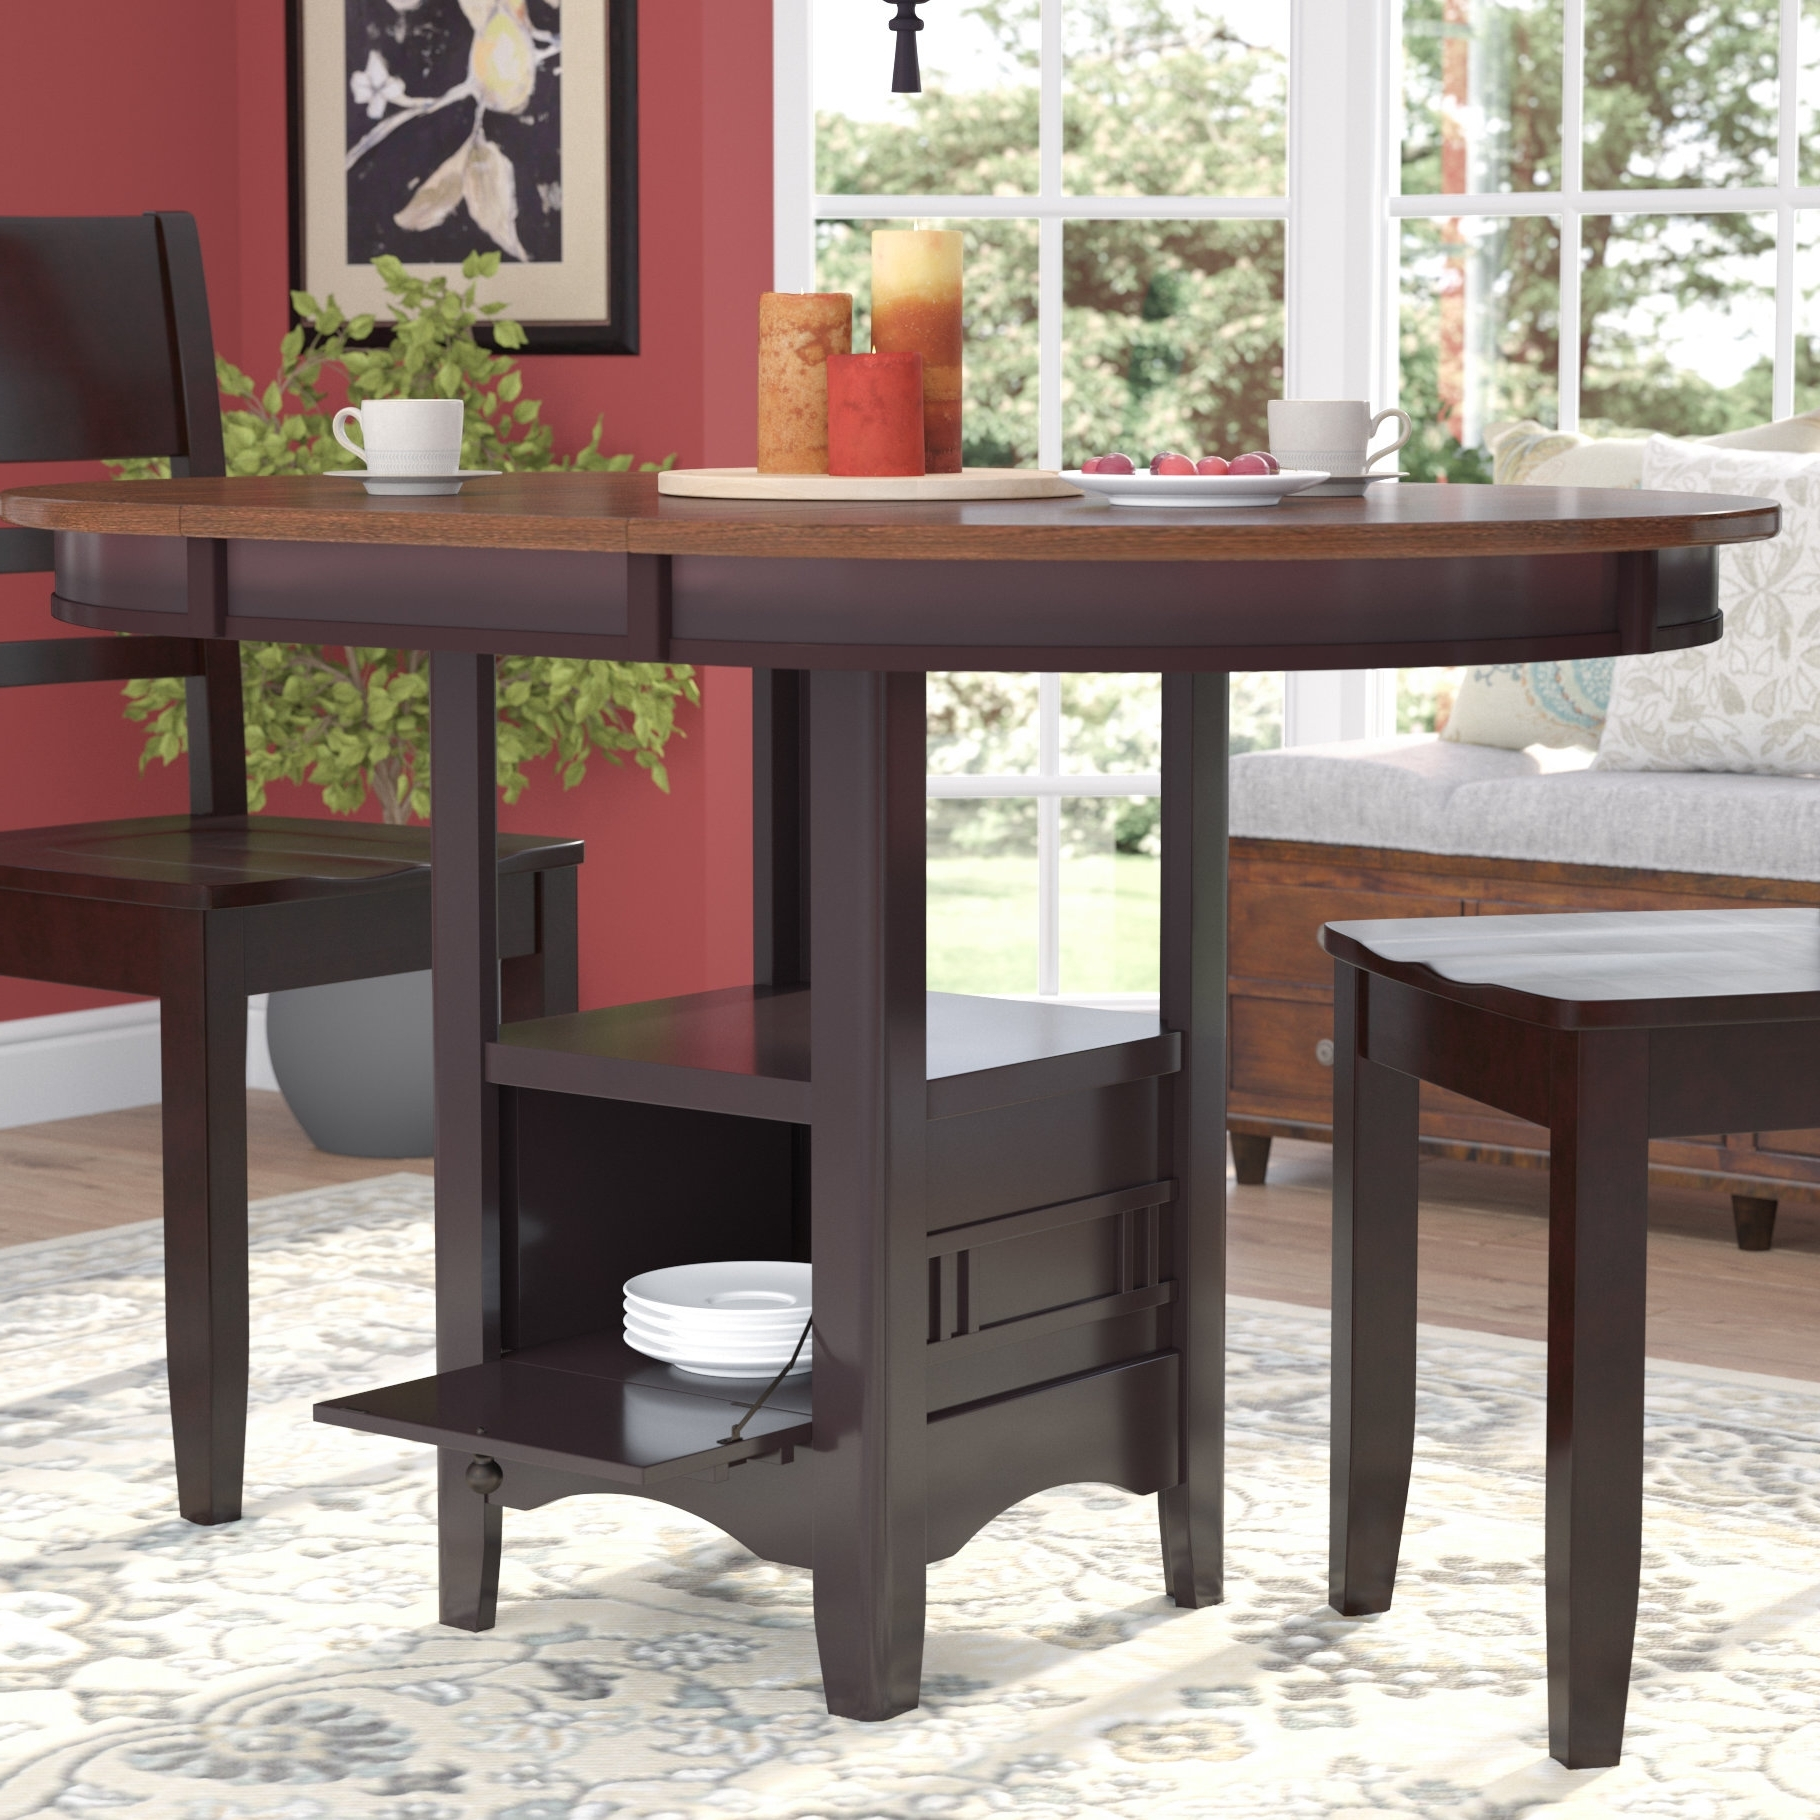 Current Darby Home Co Sinkler Counter Height Drop Leaf Dining Table Intended For Cheap Drop Leaf Dining Tables (View 23 of 25)